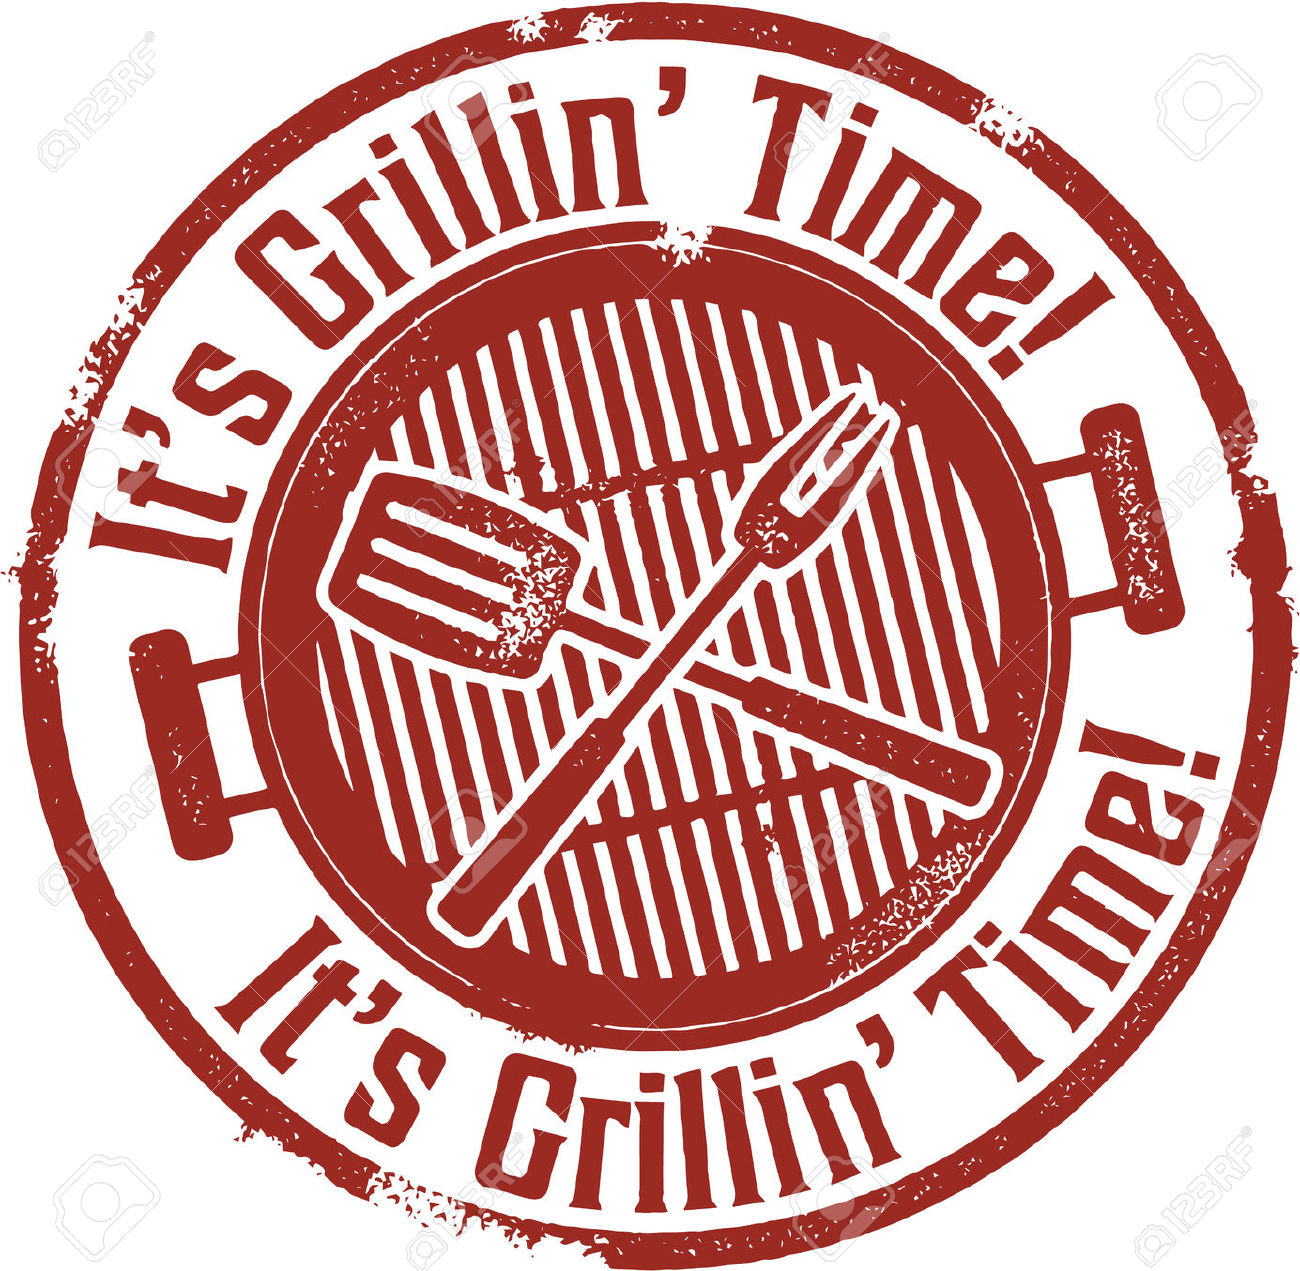 Barbecue clipart bbq time Cliparts Time Royalty S Grilling